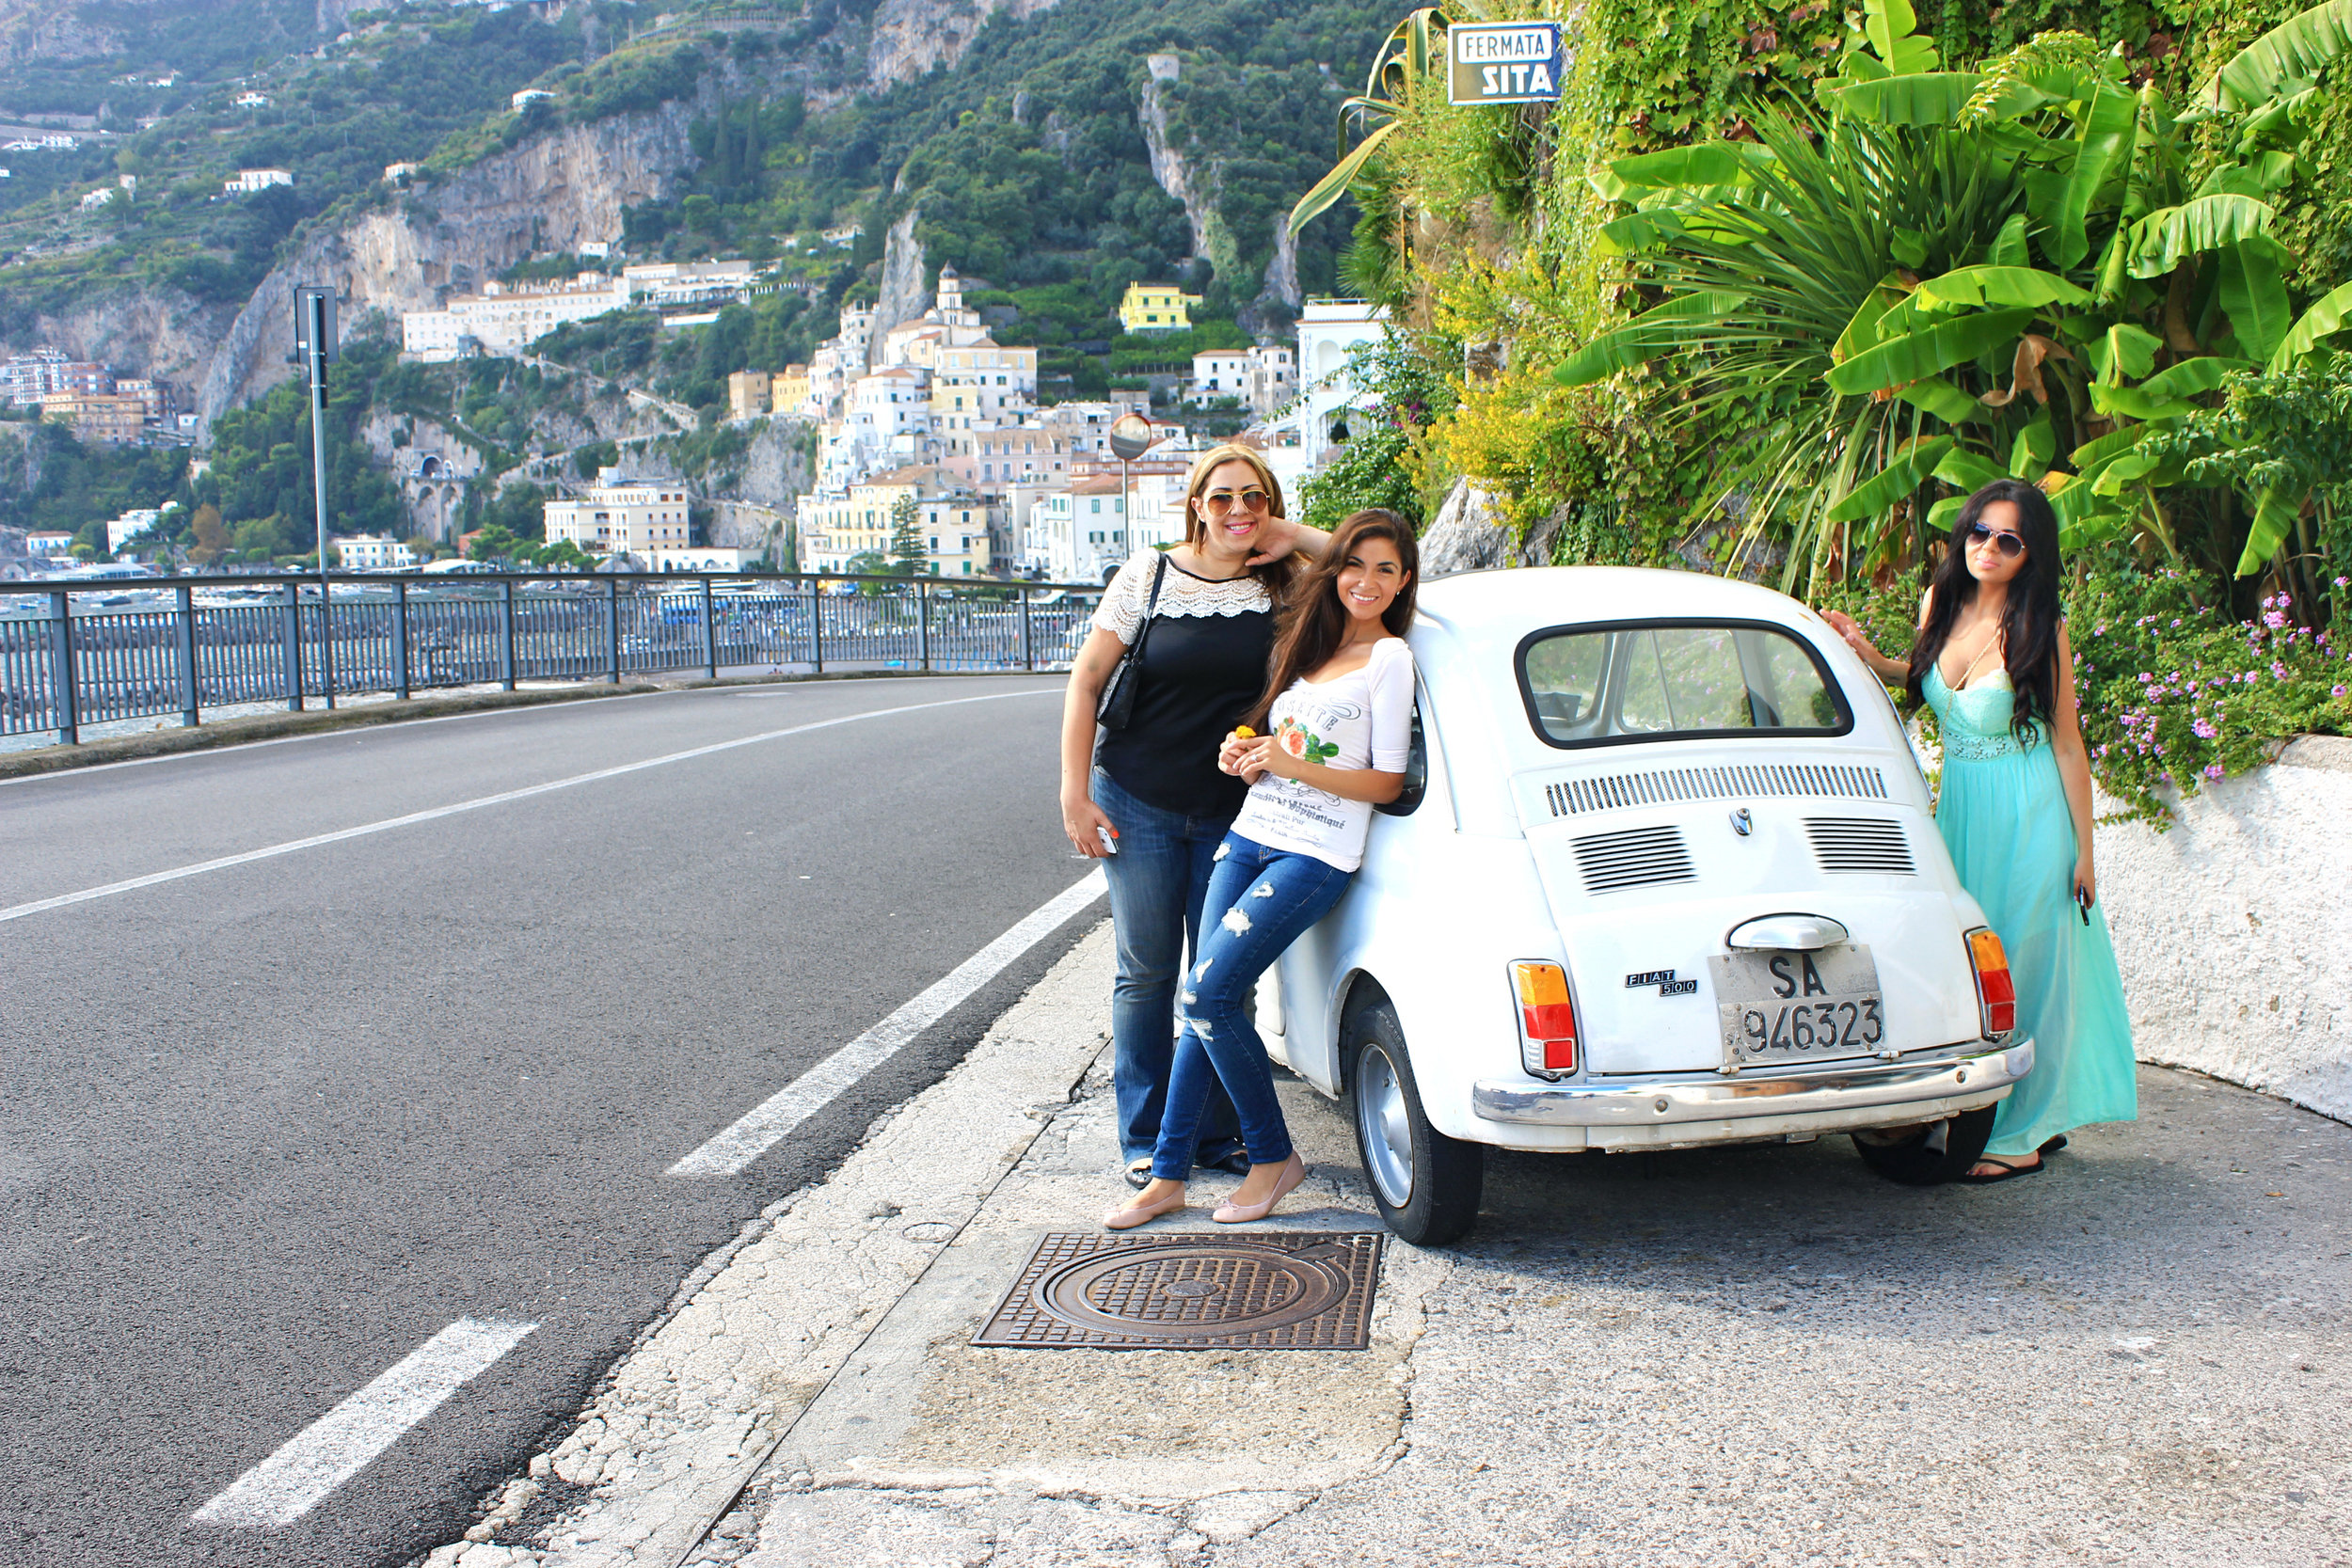 Photo Courtesy of Dame Traveler | Nastasia on the road from atrani to amalfi with friends